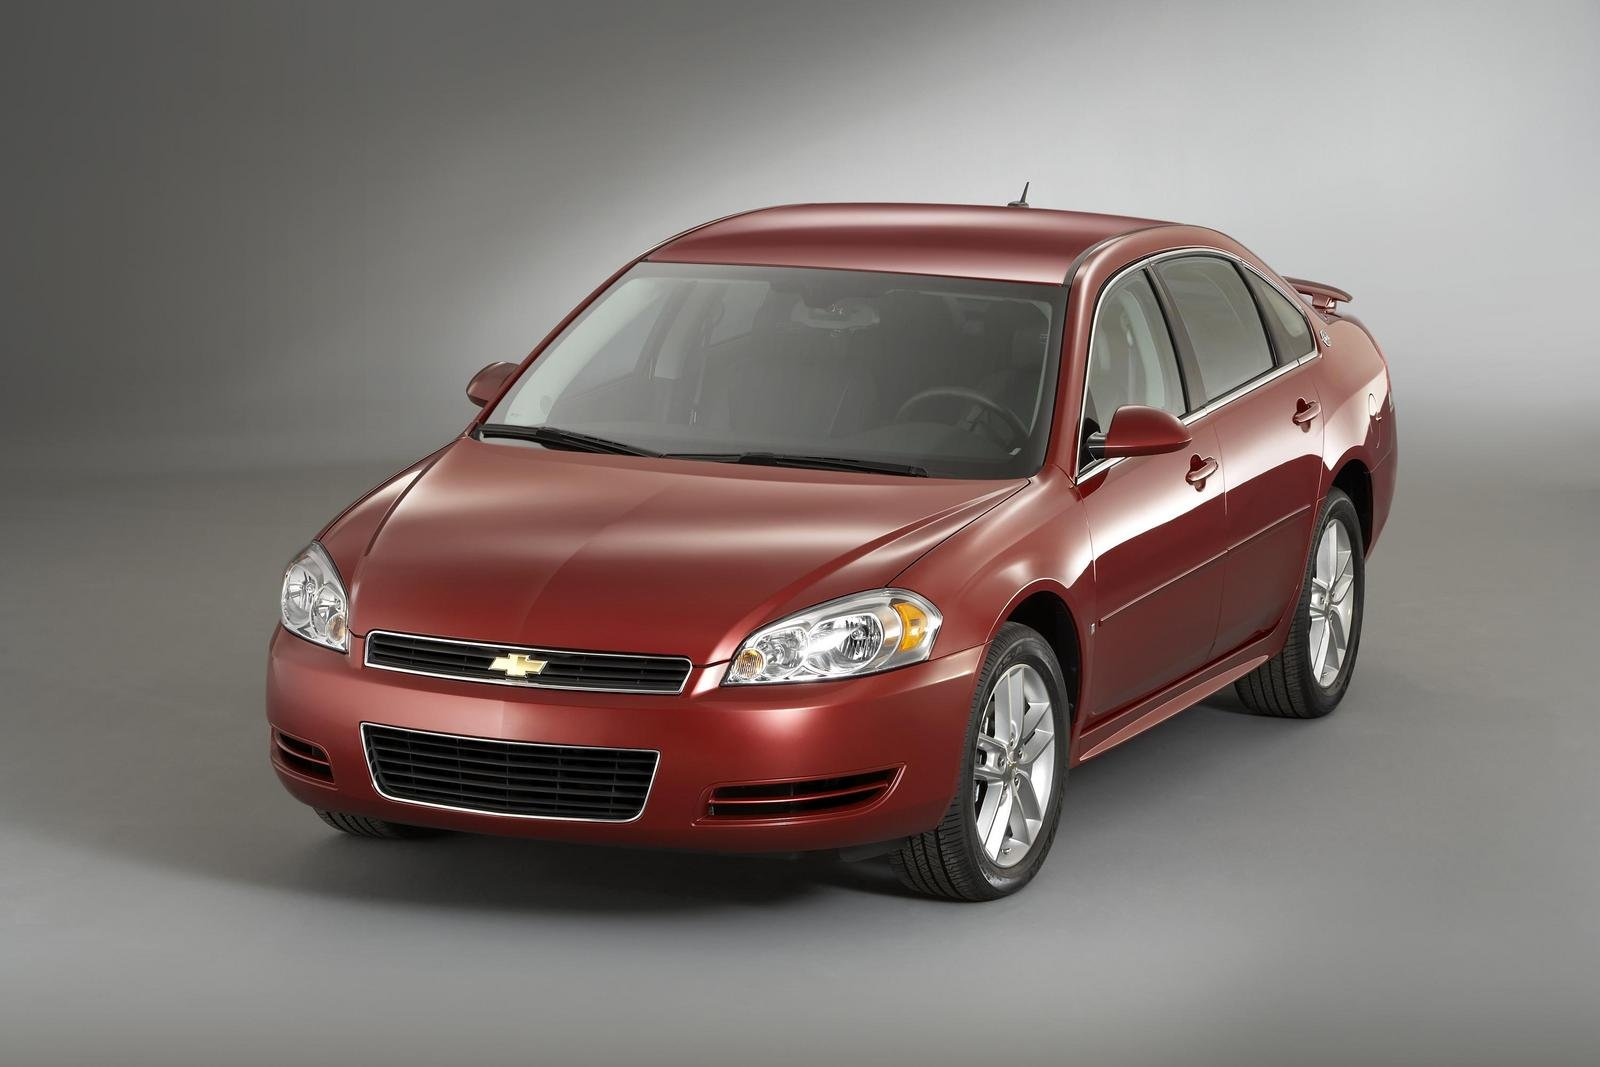 Impala 2008 chevrolet impala owners manual : Chevrolet Impala Reviews, Specs & Prices - Top Speed